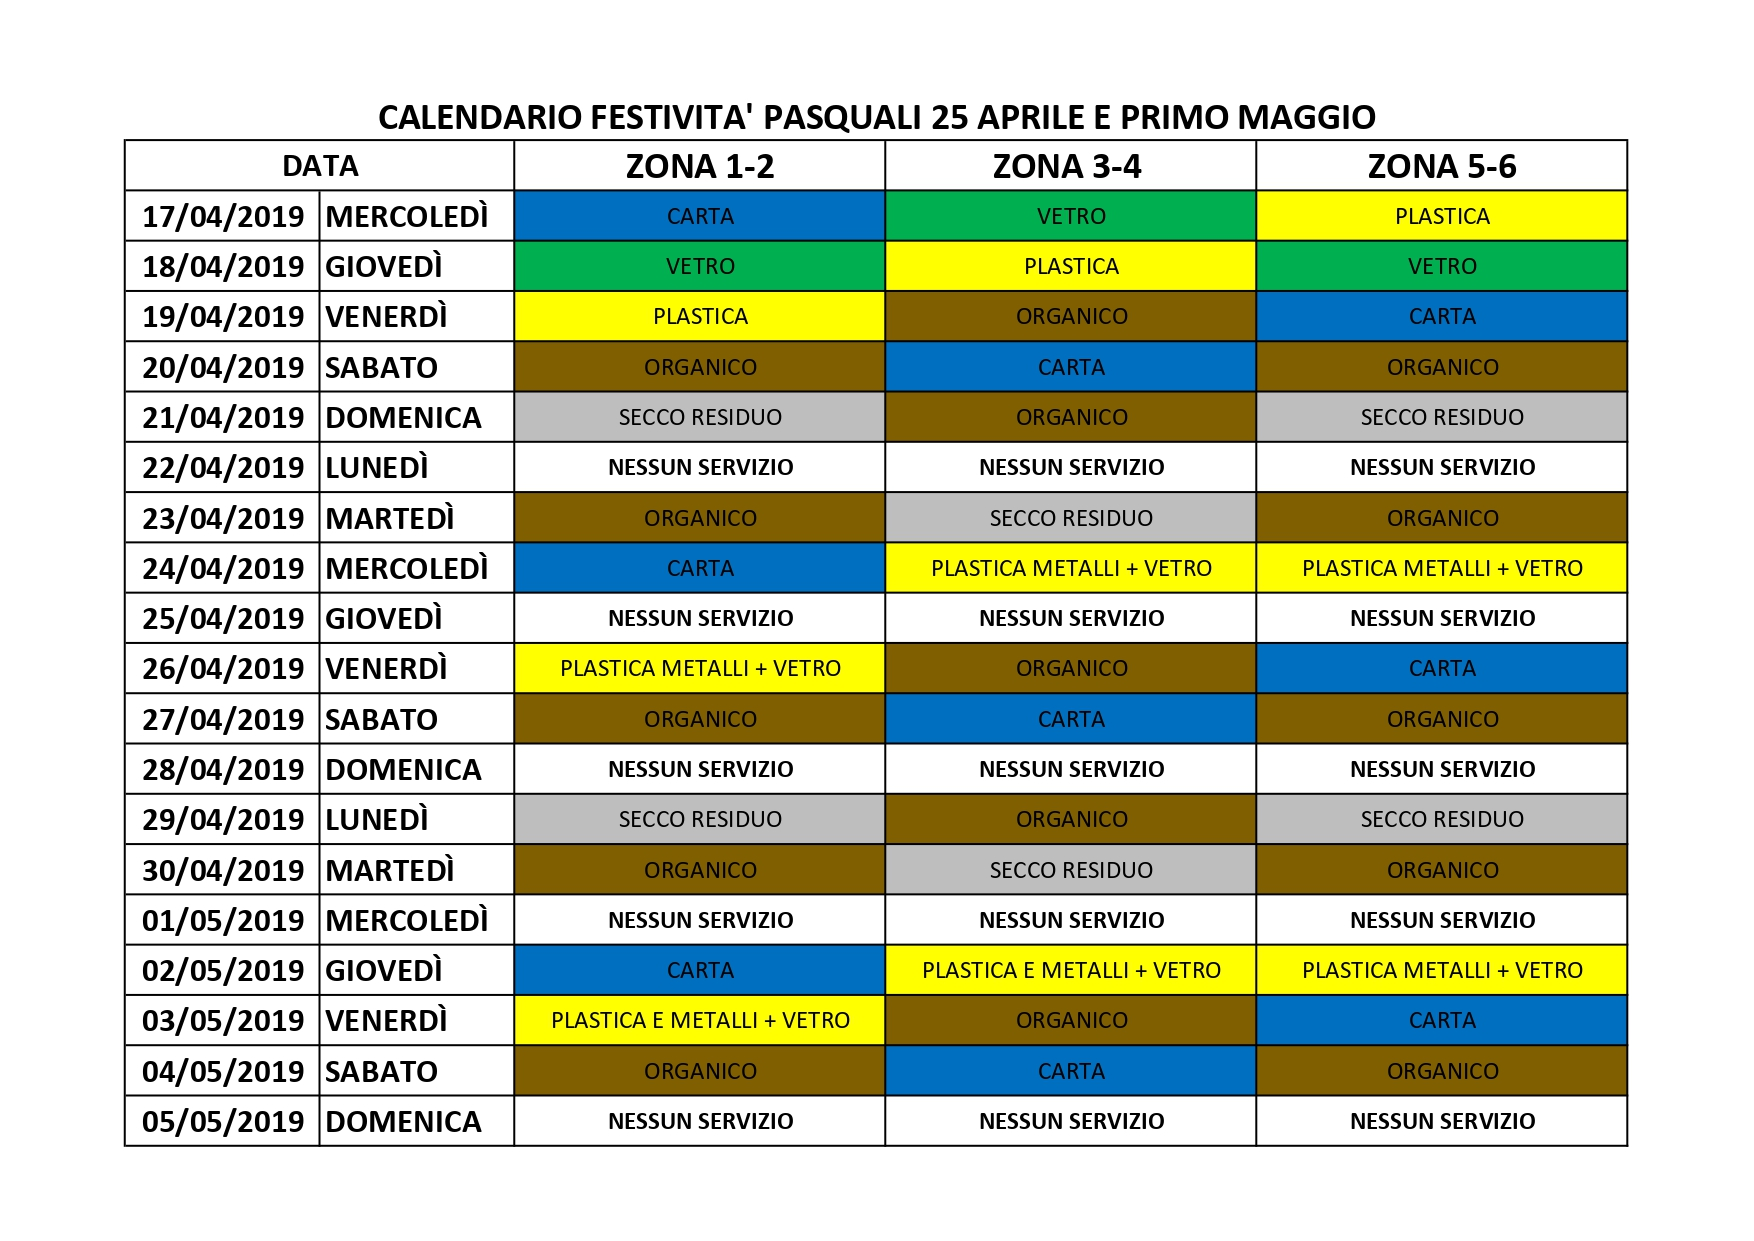 Calendario Differenziata.Zona 5 6 Archives Progetto Ambiente